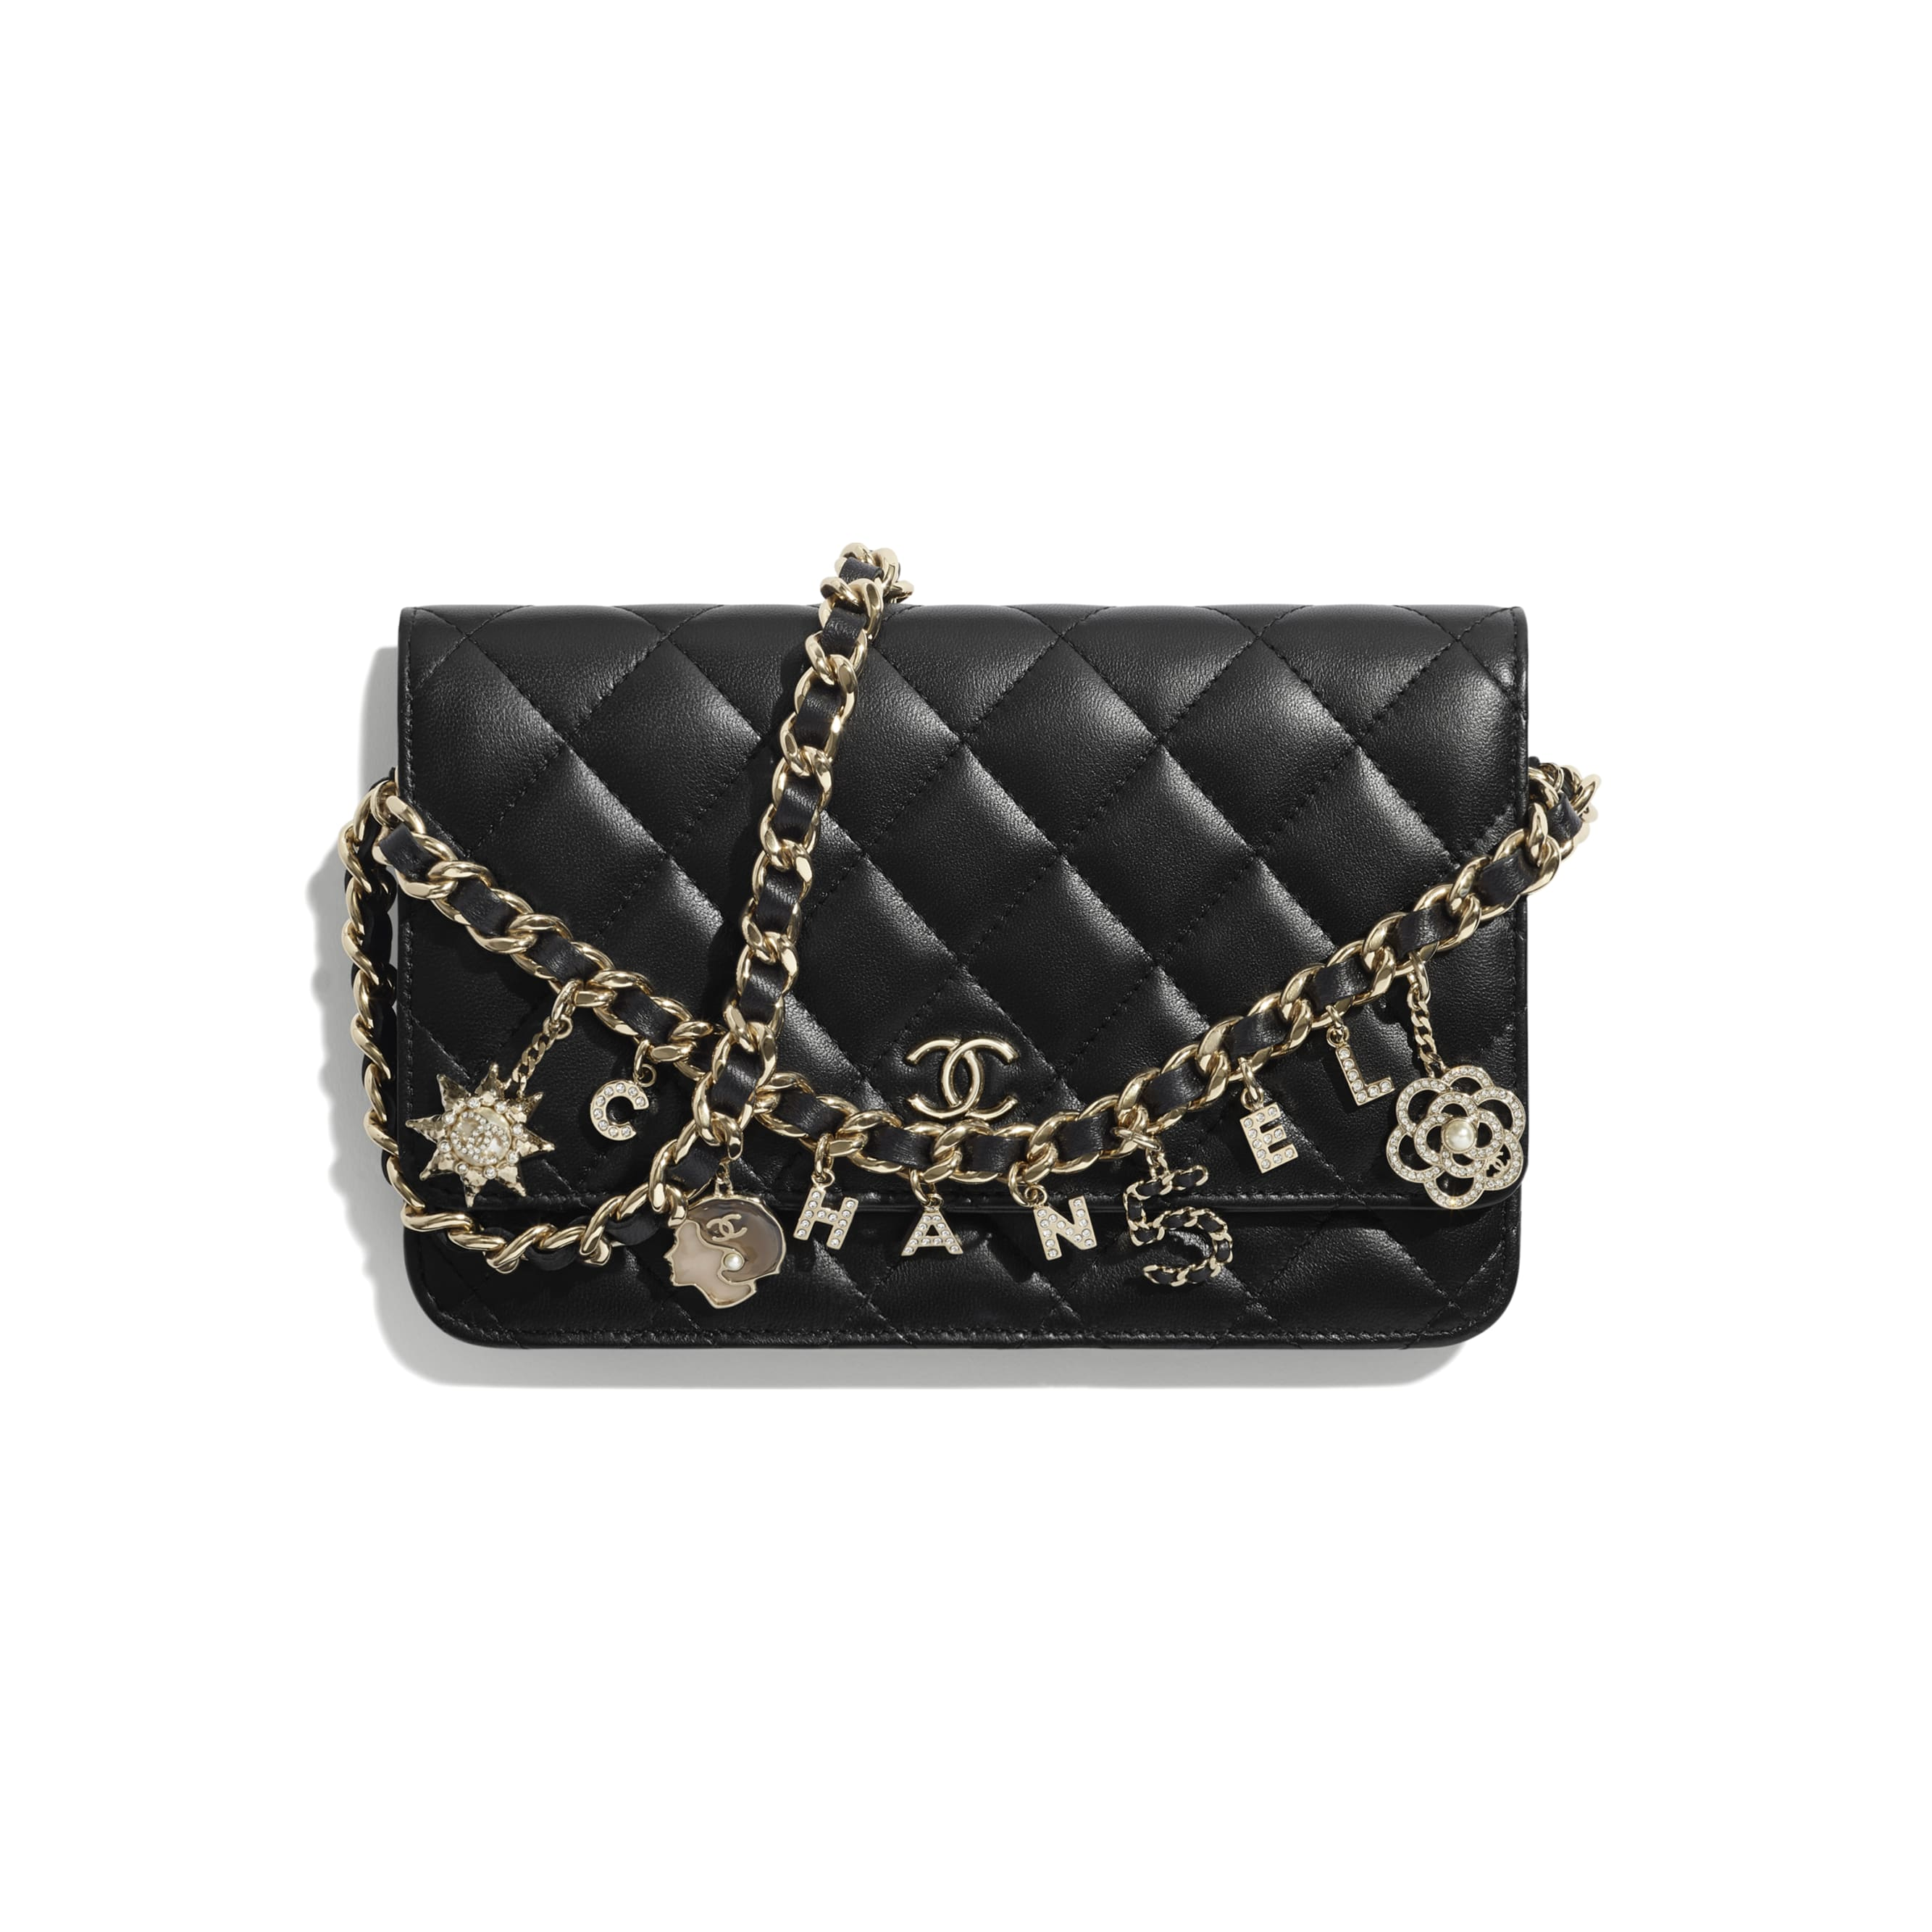 Wallet On Chain - Black - Lambskin, Charms & Gold-Tone Metal - CHANEL - Default view - see standard sized version